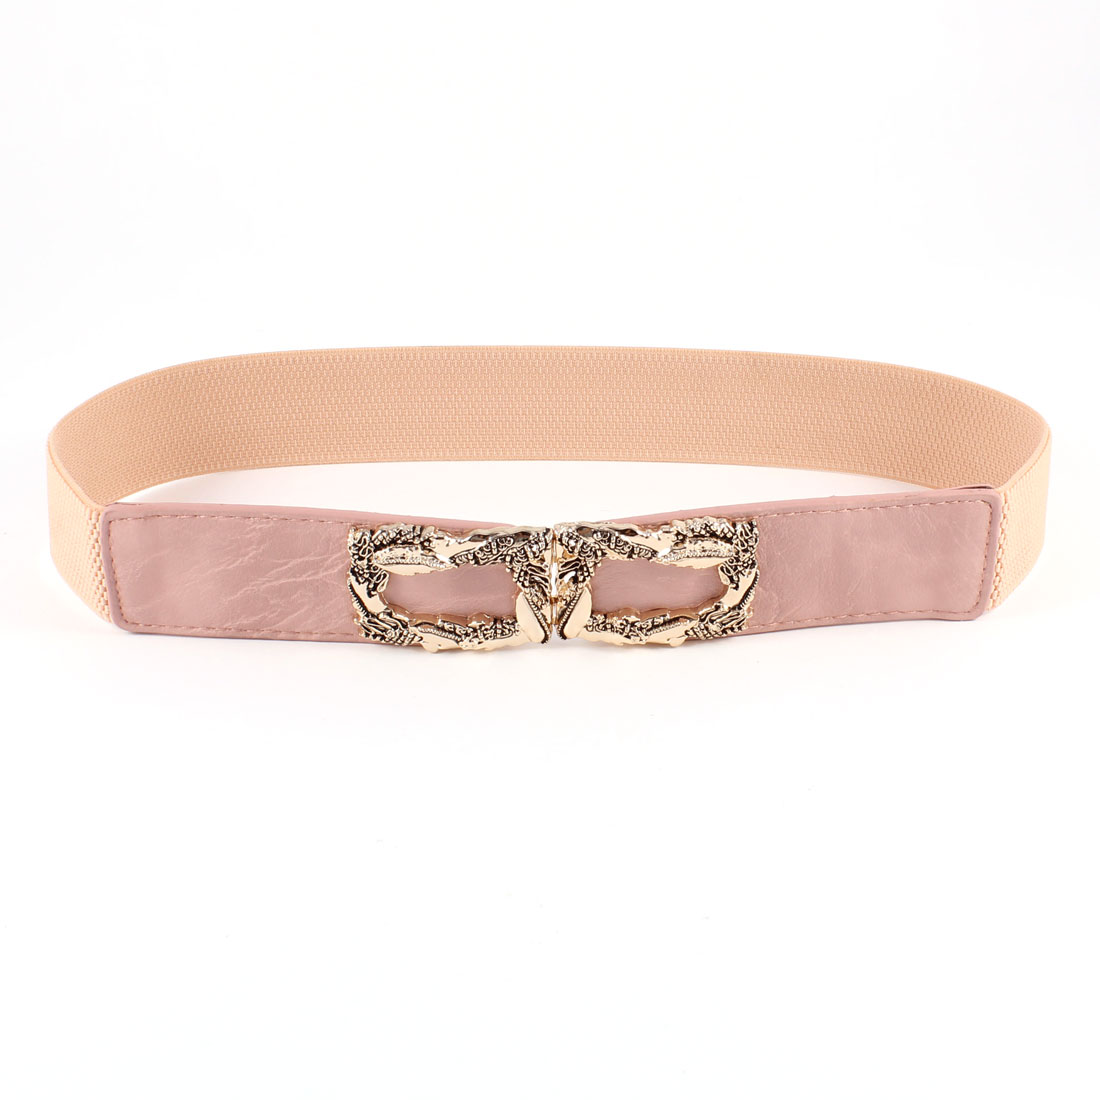 Women Metal Snake Ornament Interlocking Buckle 4cm Wide Elastic Belt Pink